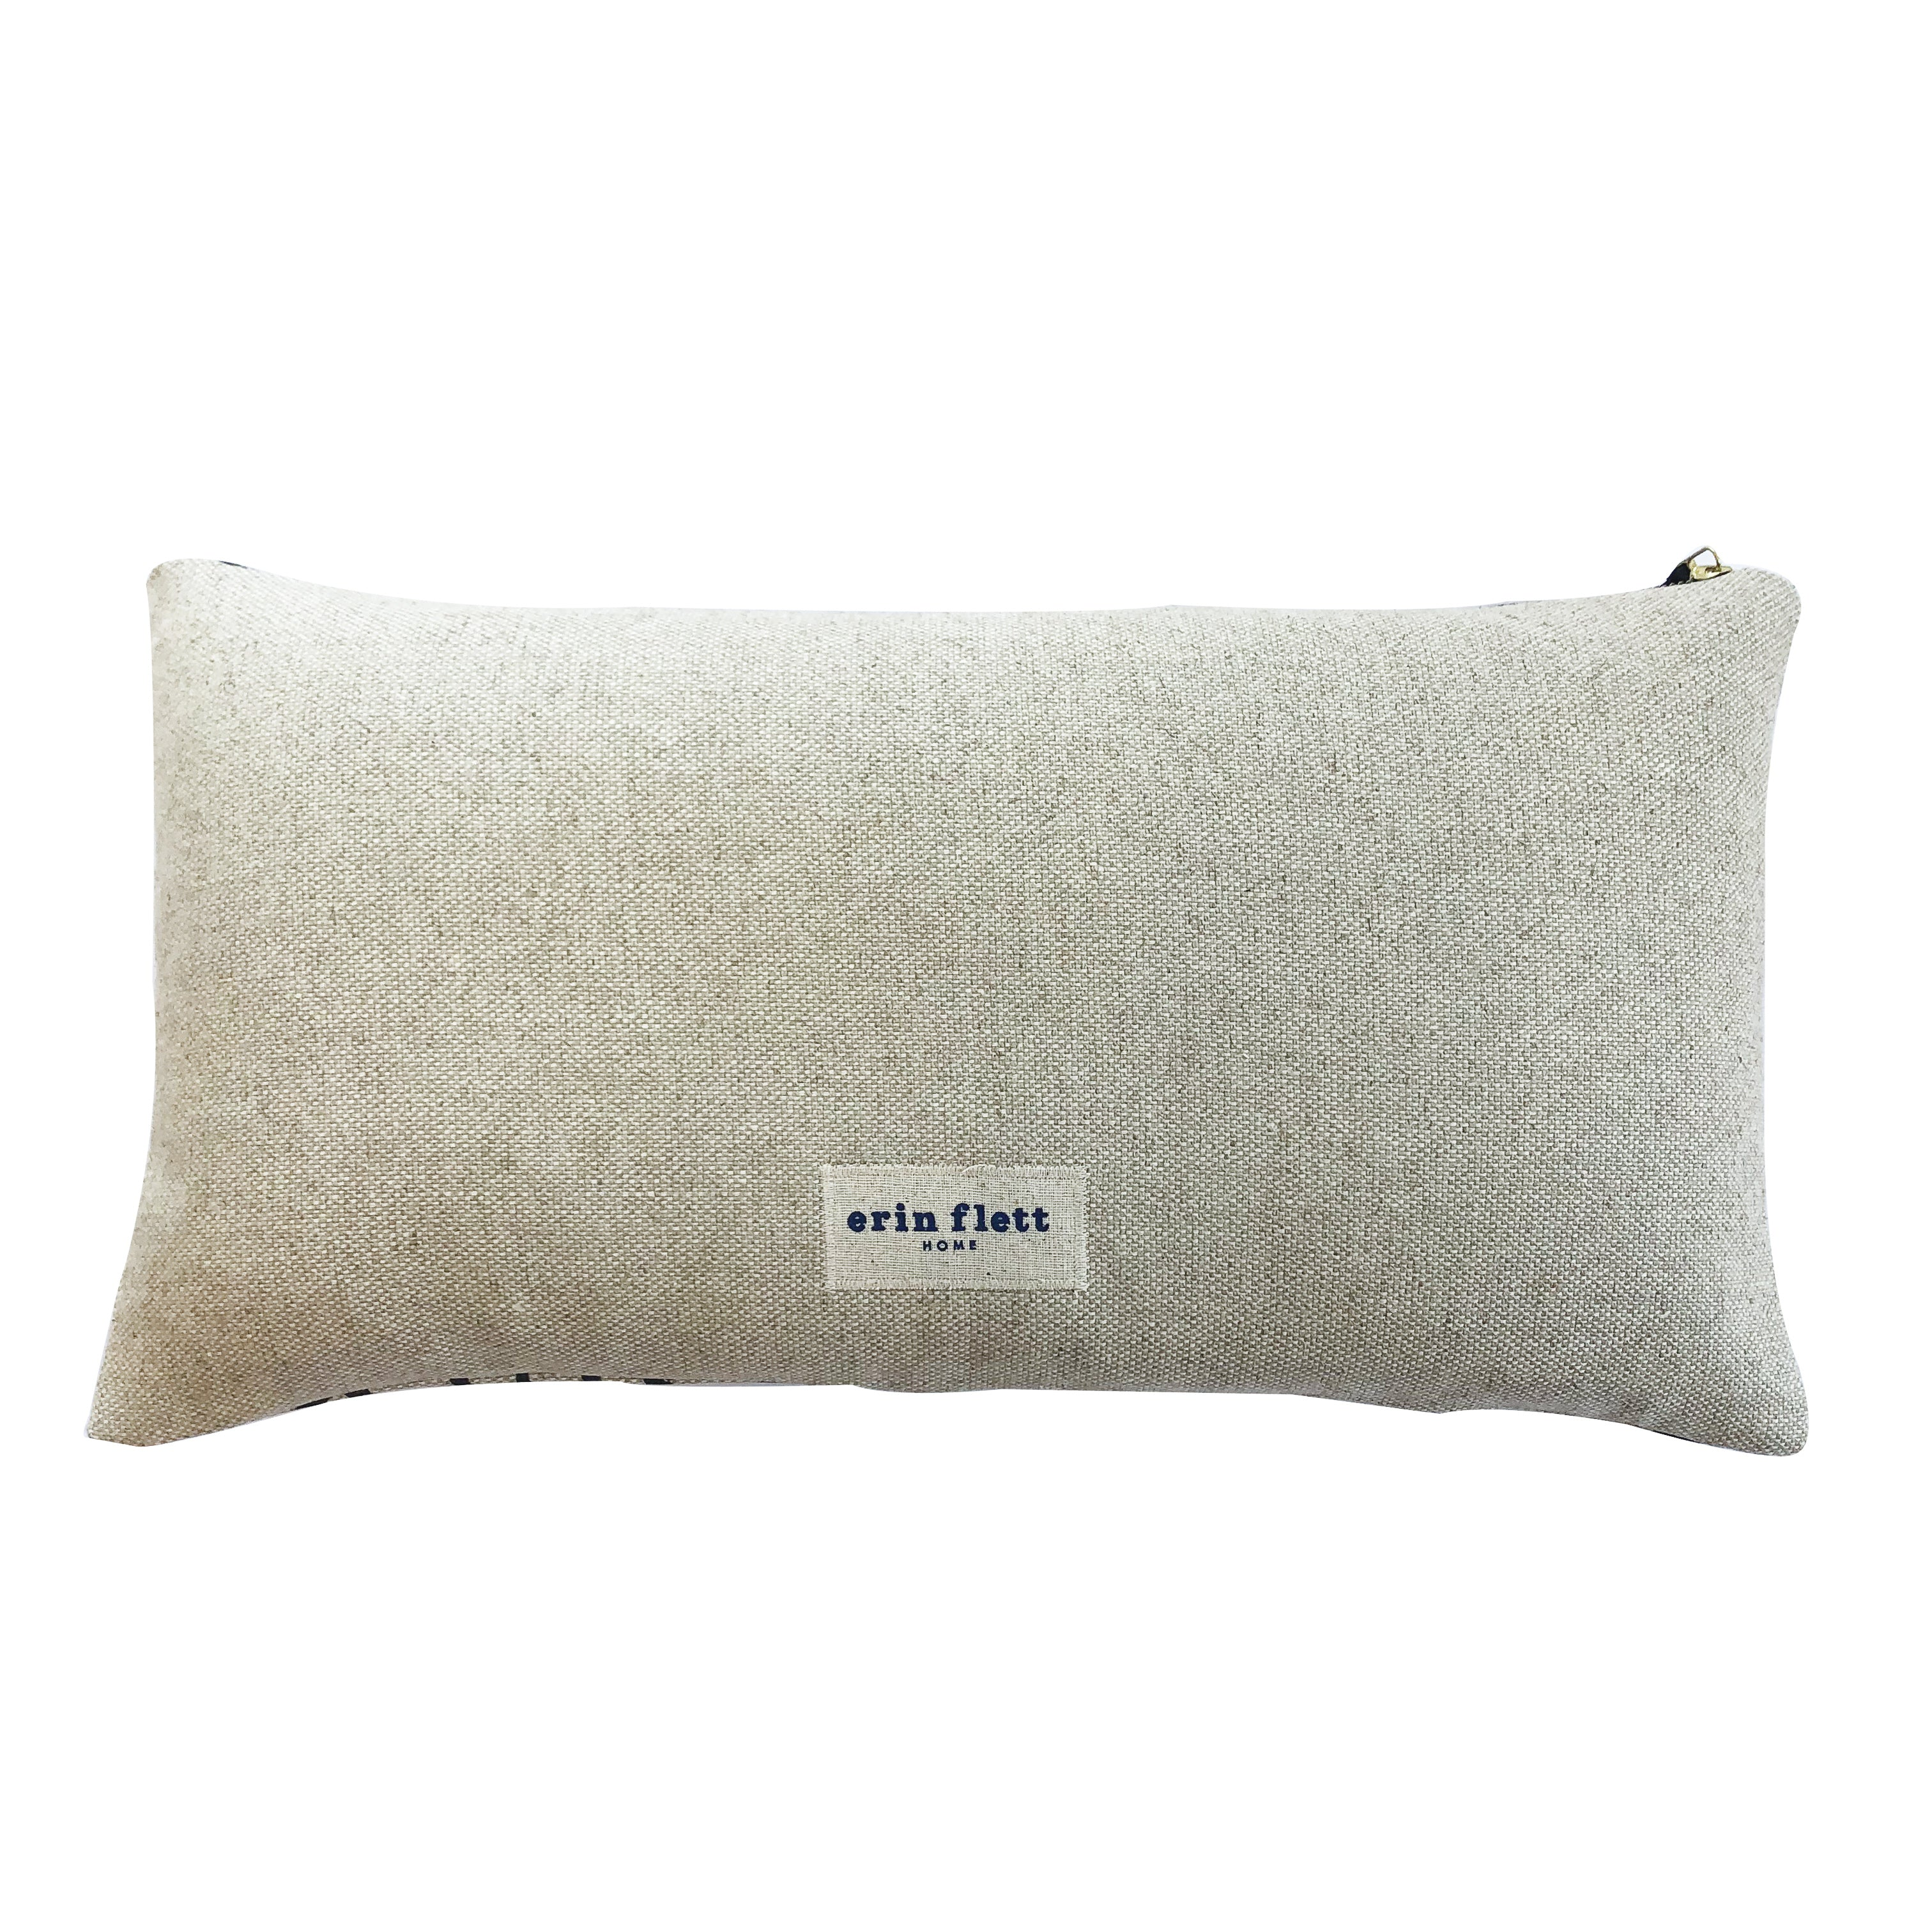 WORN BLACK TWIGS HEAVY OATMEAL LINEN PILLOW